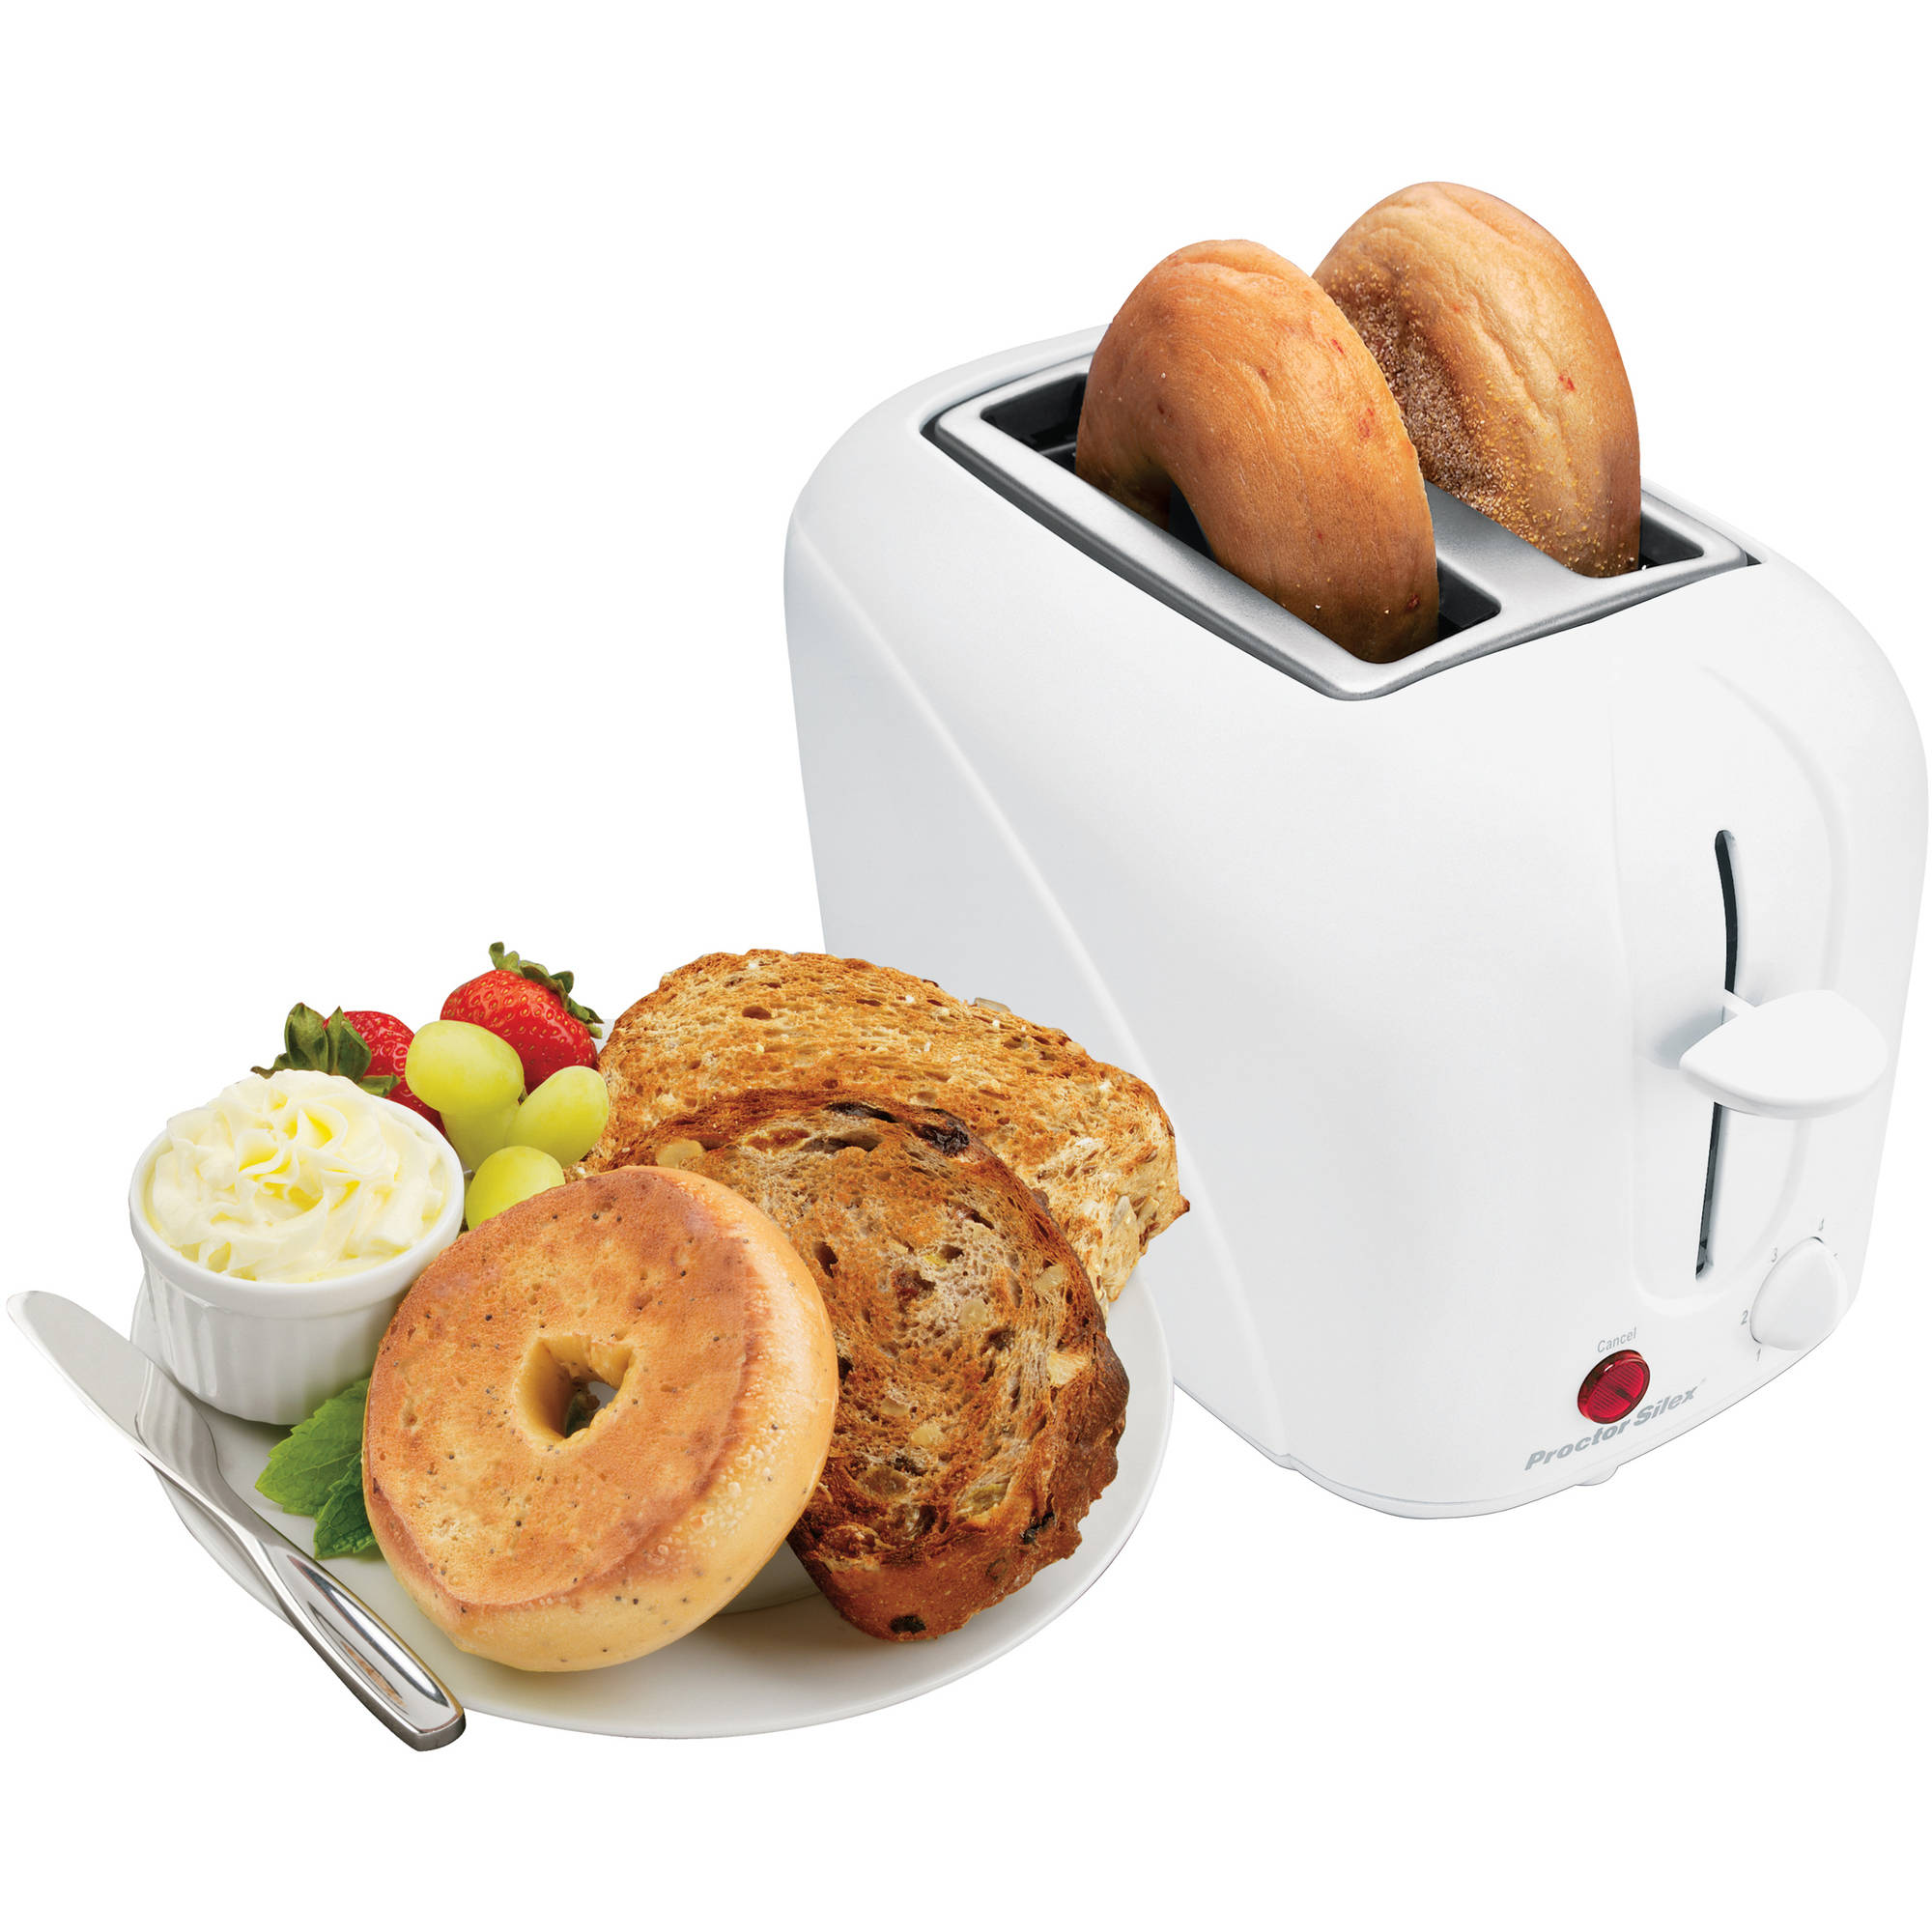 Proctor Silex Cool-Touch Toaster | Model # 22203y